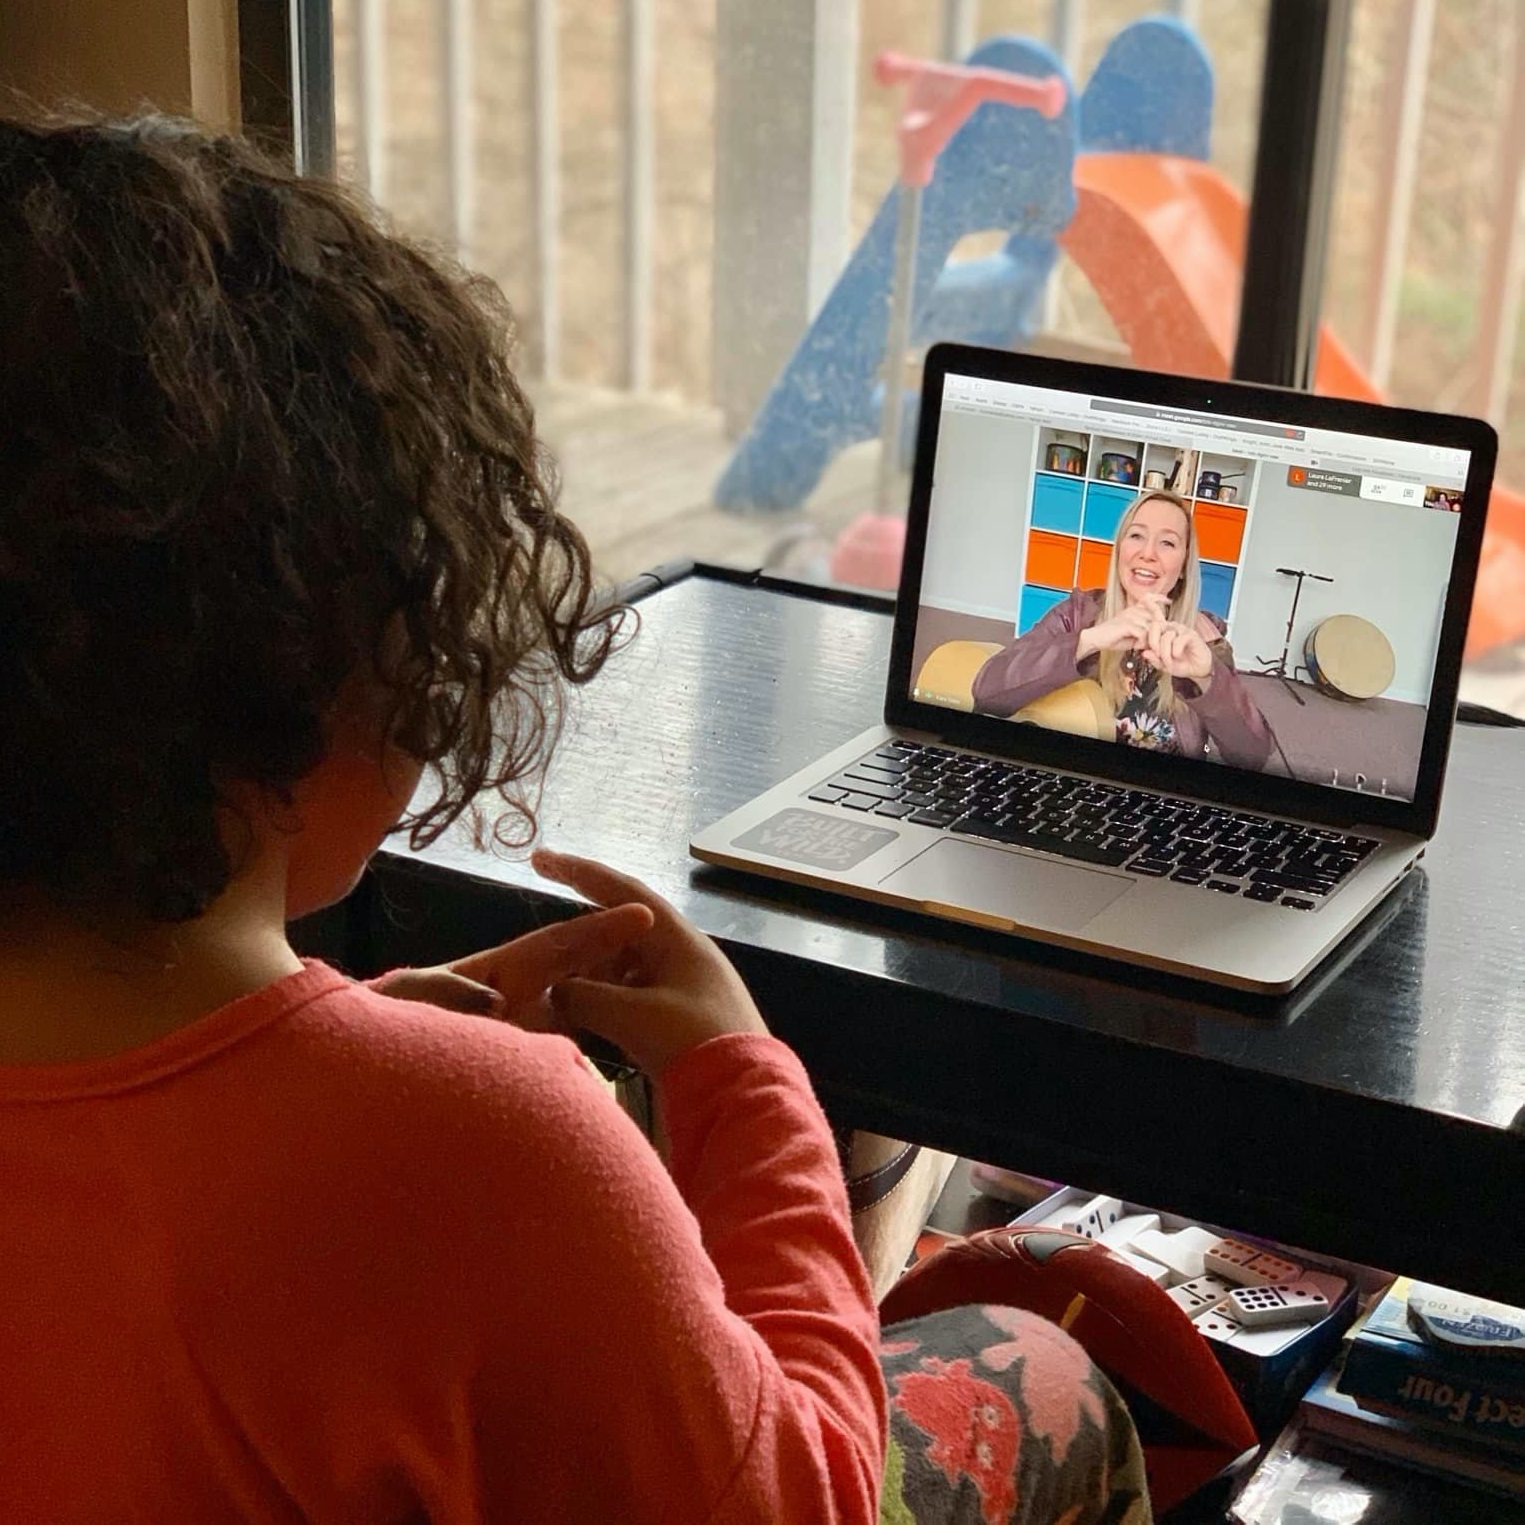 young girl on FaceTime with music therapist